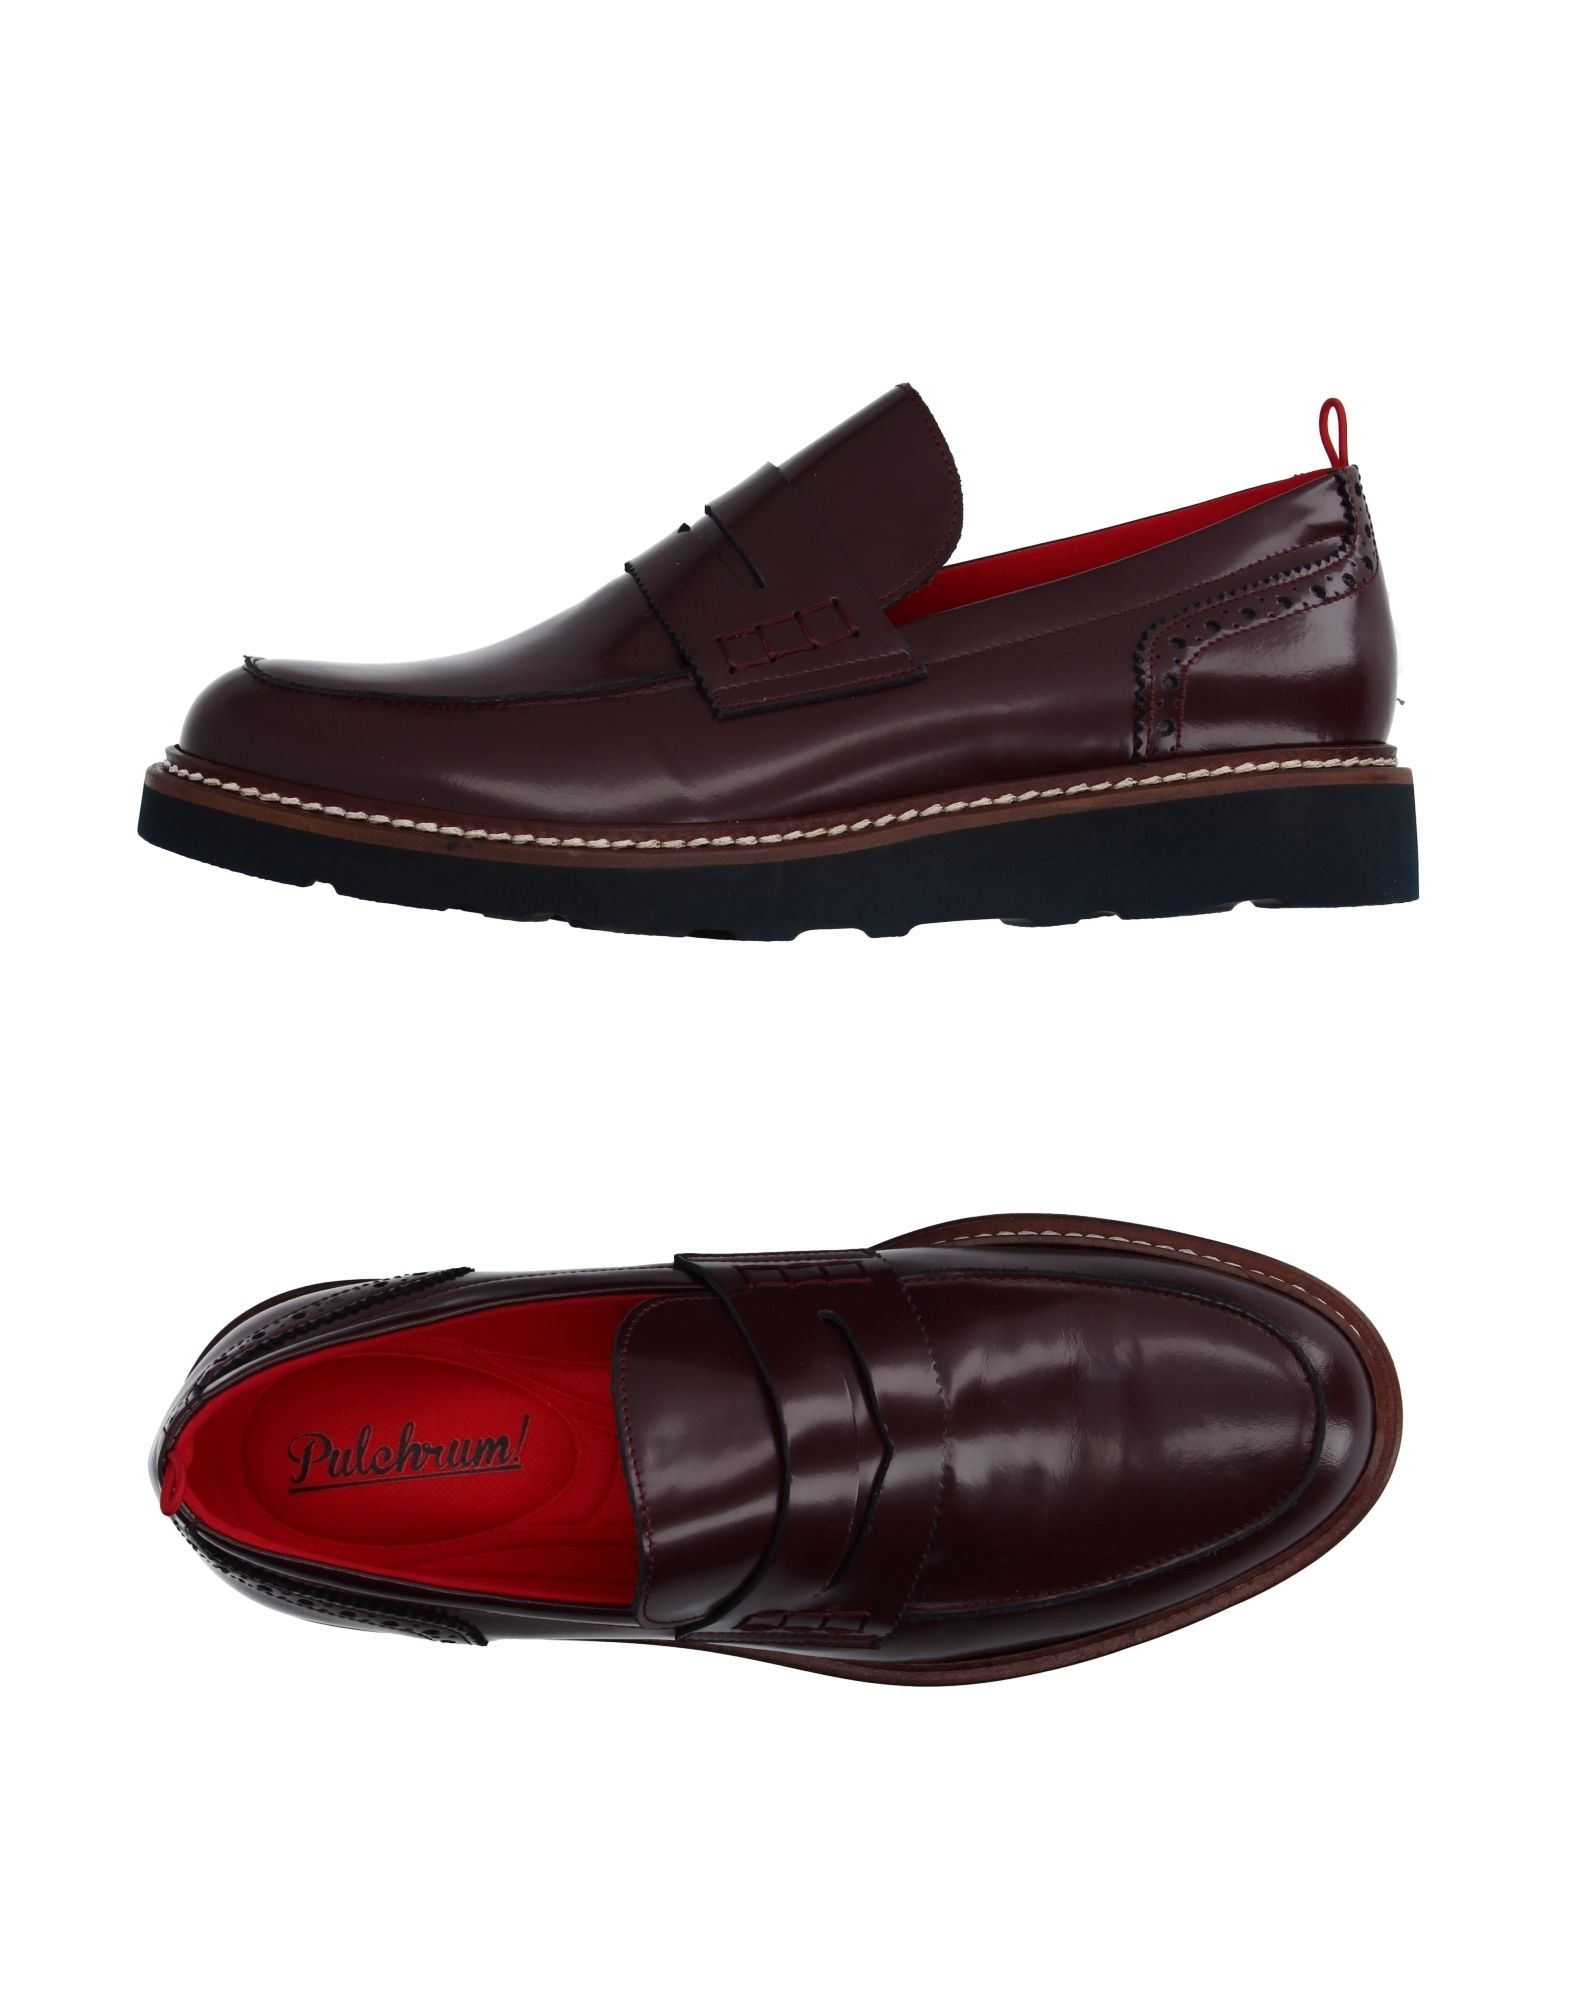 PULCHRUM ! Loafers in Maroon